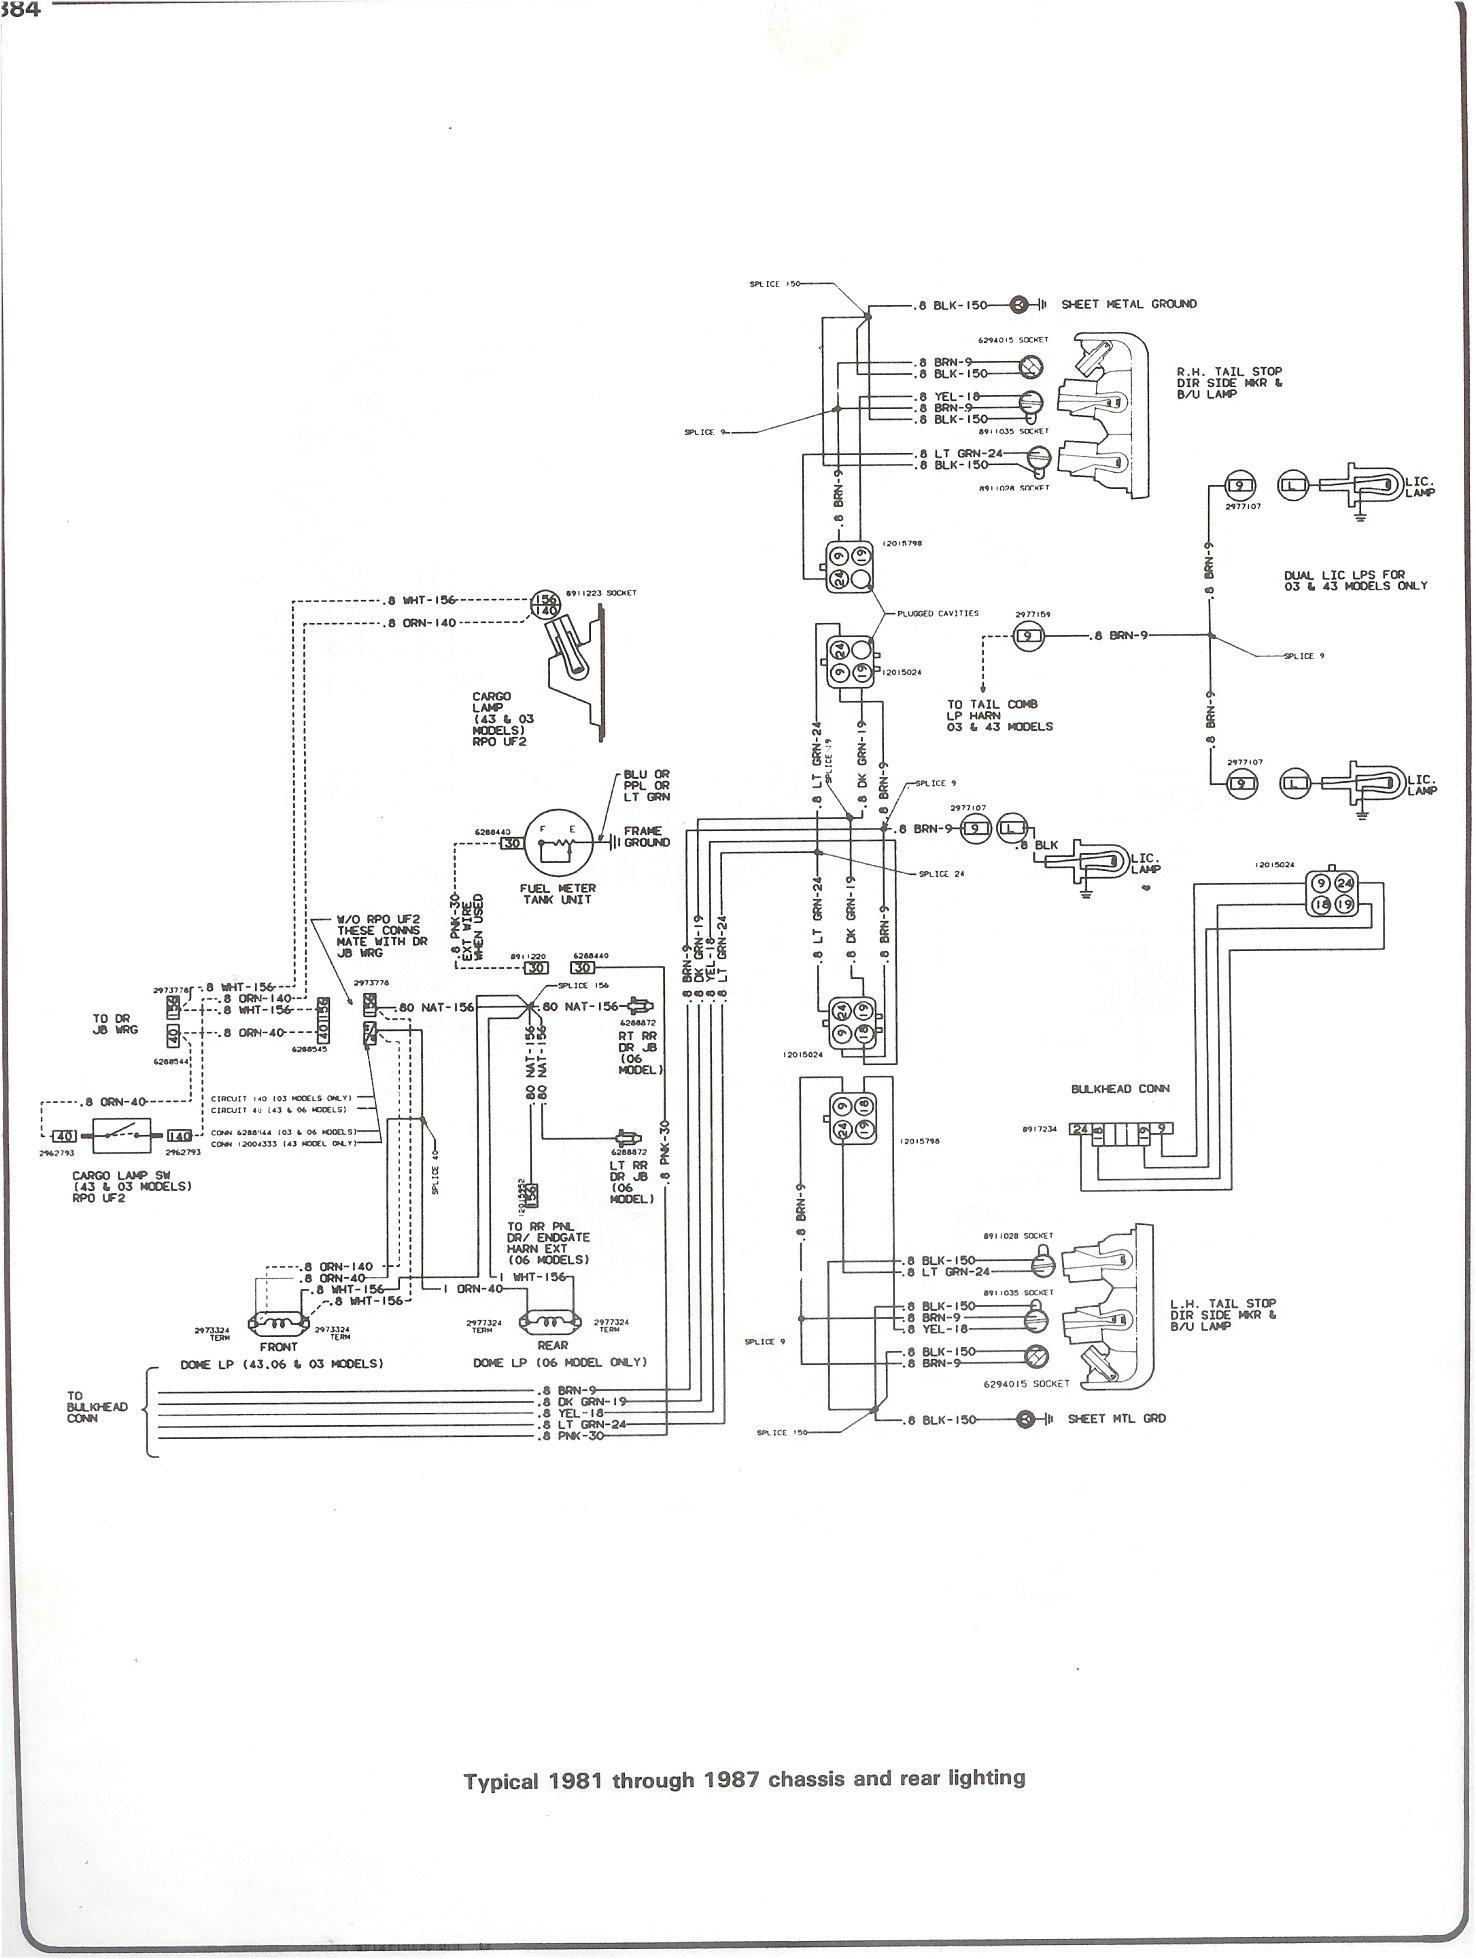 7B514E0 1980 Chevy K10 Fuse Box Diagram | Wiring ResourcesWiring Resources